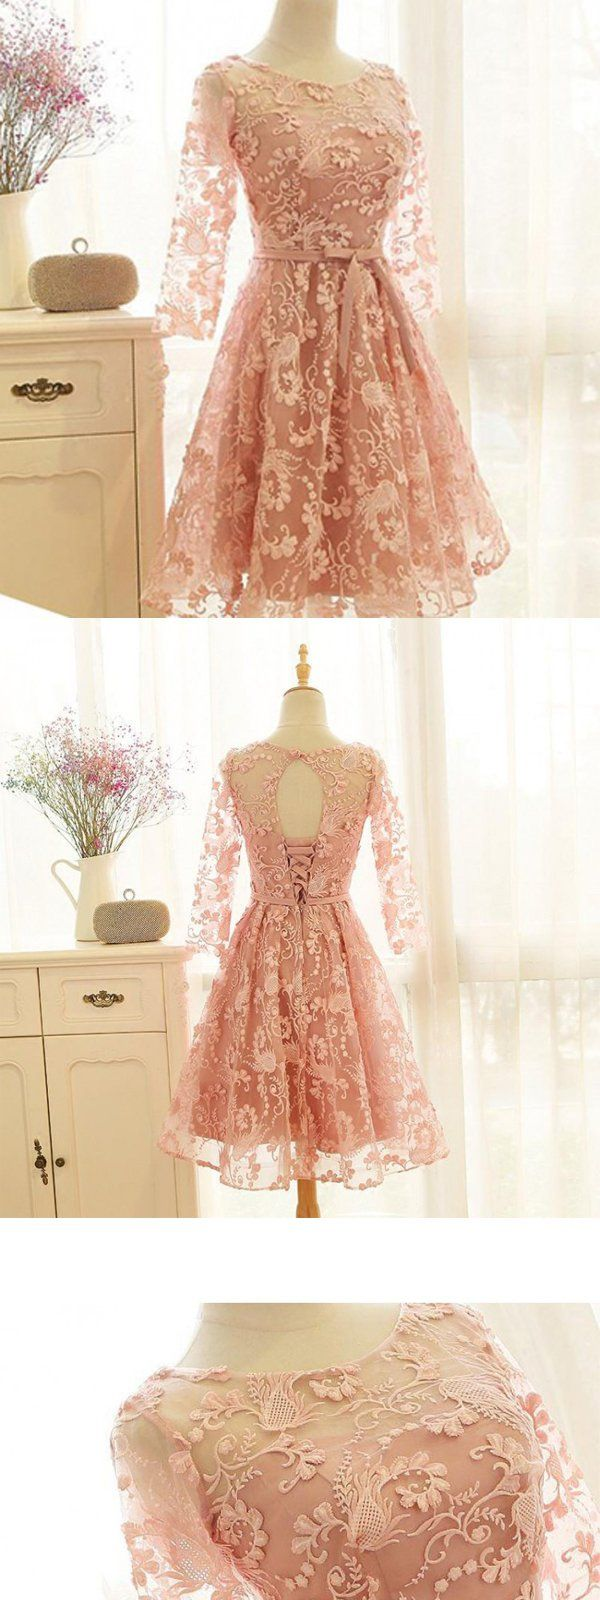 Pink Lace Homecoming Dresses,Open Back Homecoming Dresses,Long Sleeves Short Prom Dresses,BDY0248 Pink Lace Homecoming Dresses,Open Back Homecoming Dresses,Long Sleeves Short Prom Dresses,BDY0248 3